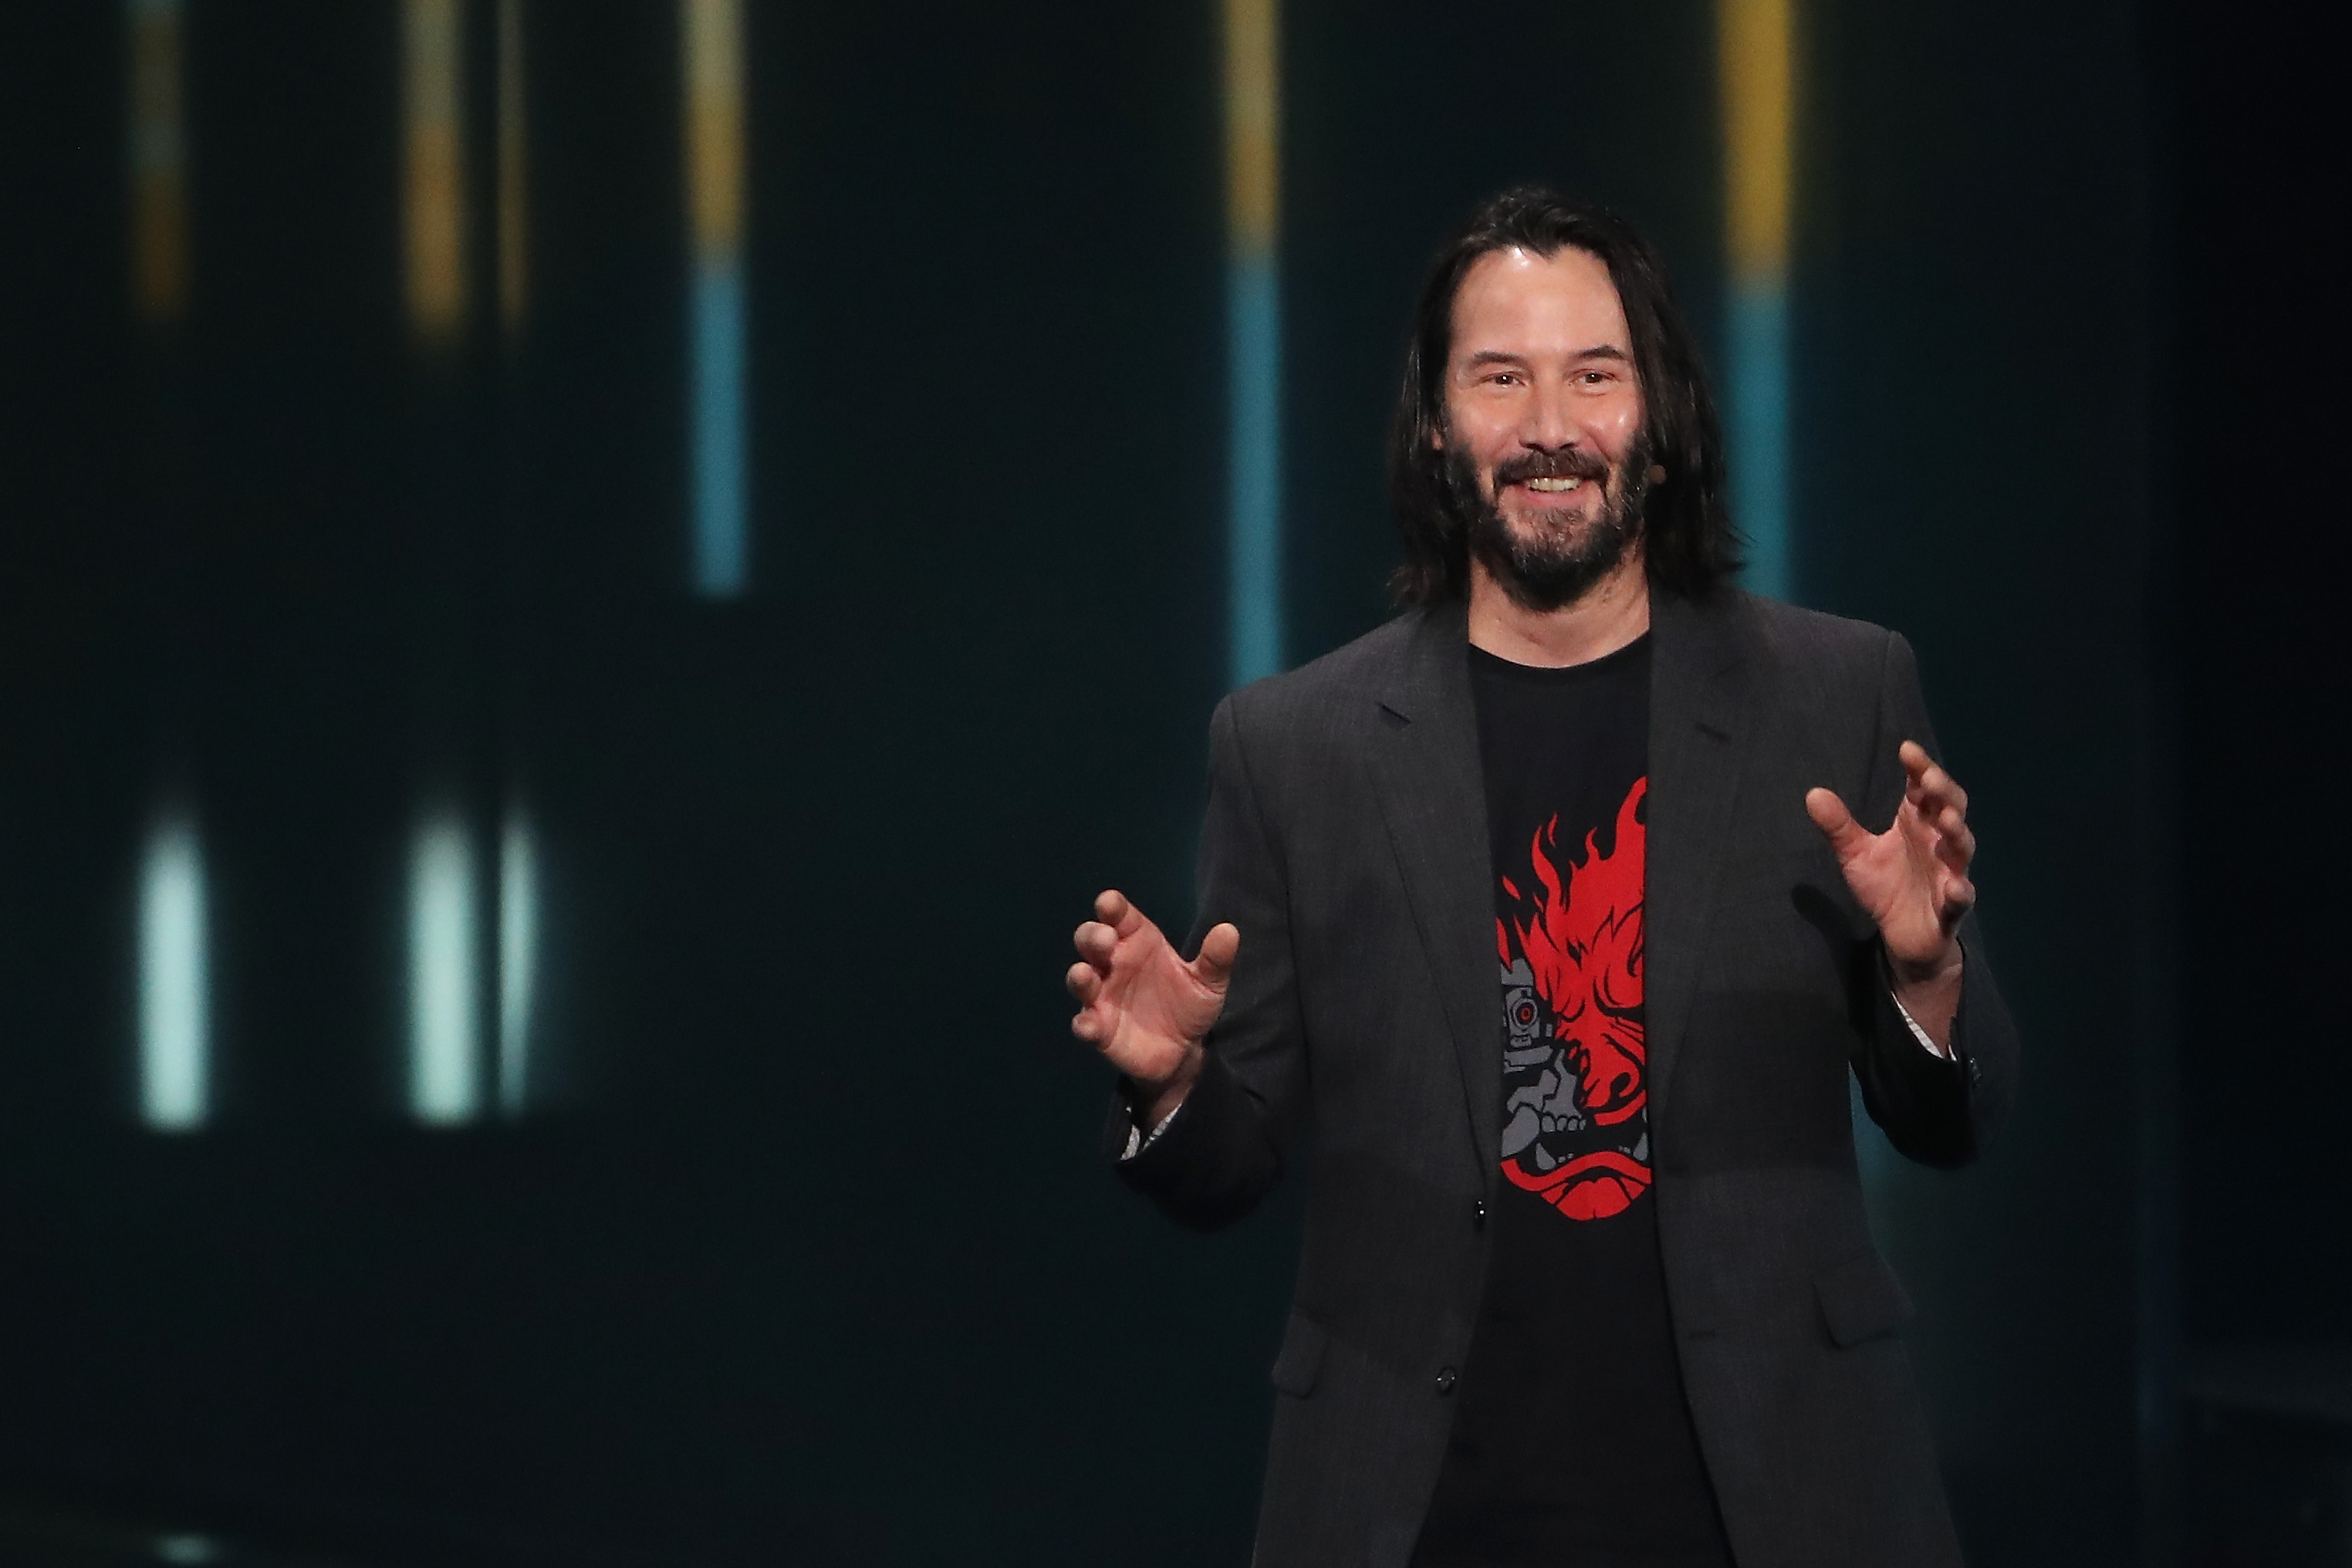 Unique 'Matrix' Movie Space With Keanu Reeves And Lana Wachowski thumbnail